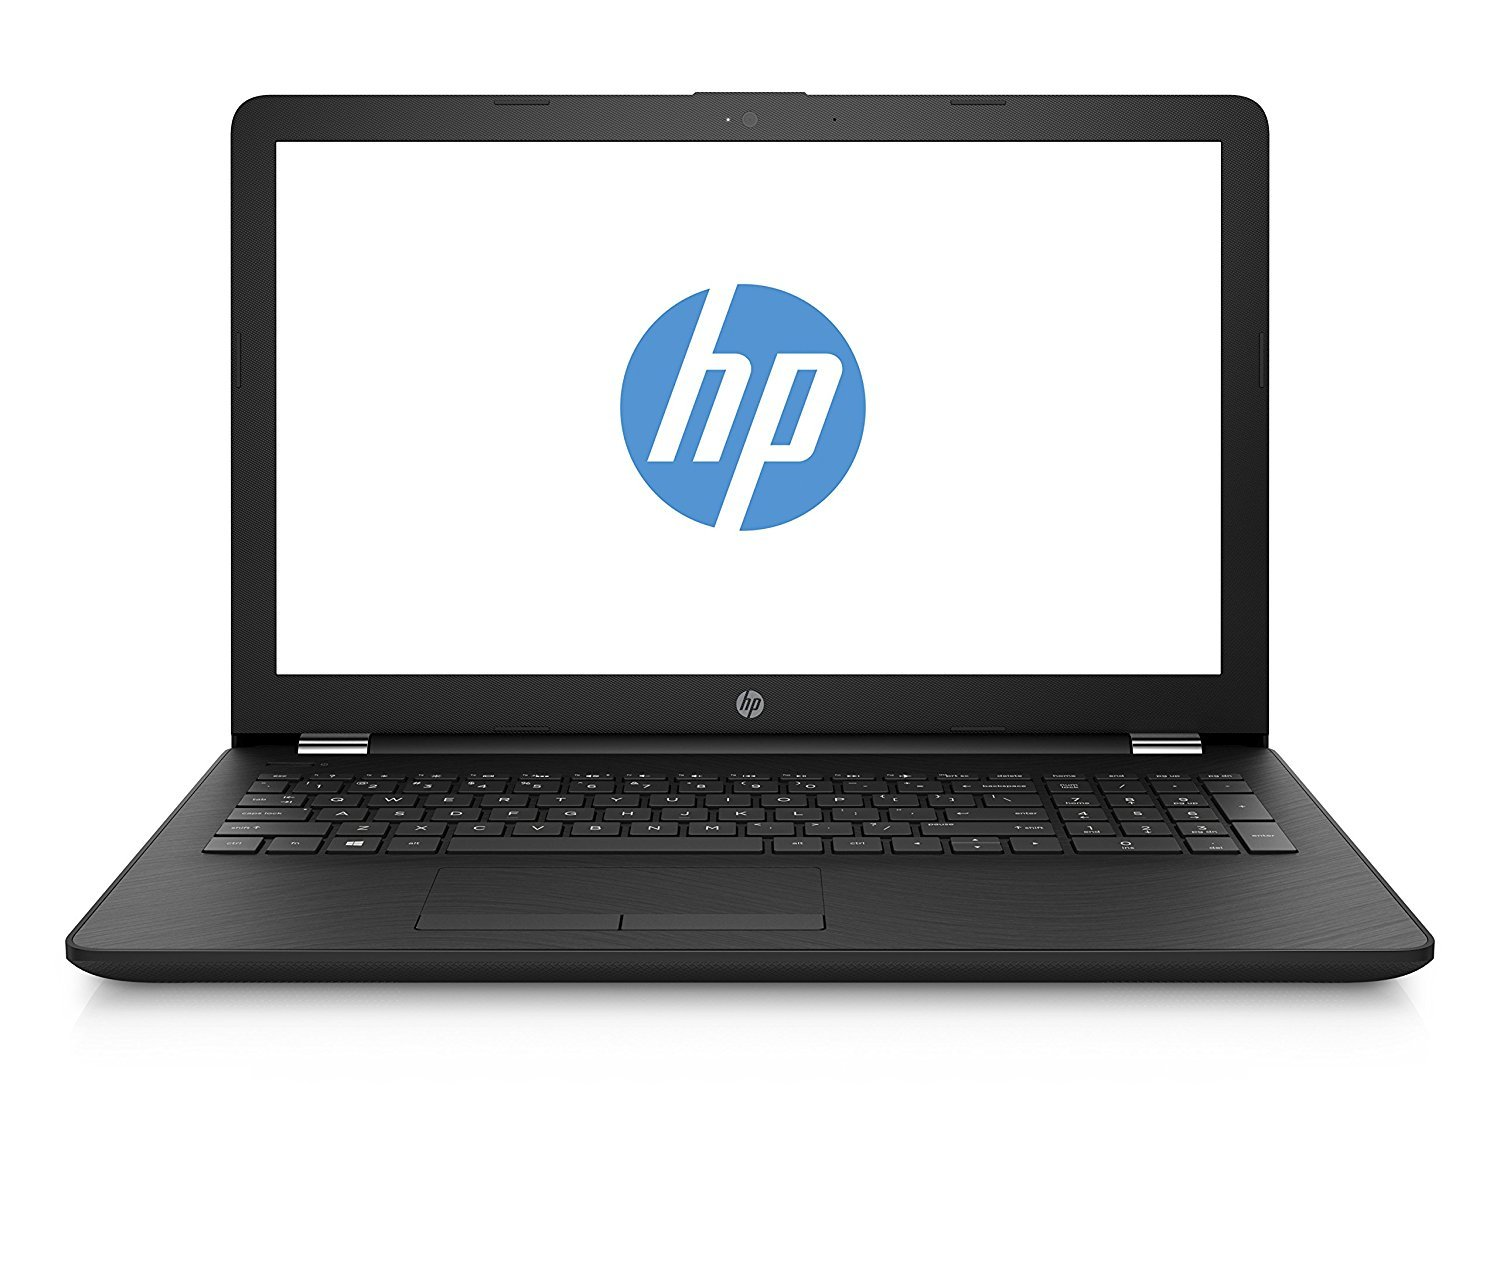 HP 15-bs145tu 15.6-inch FHD Laptop Manual